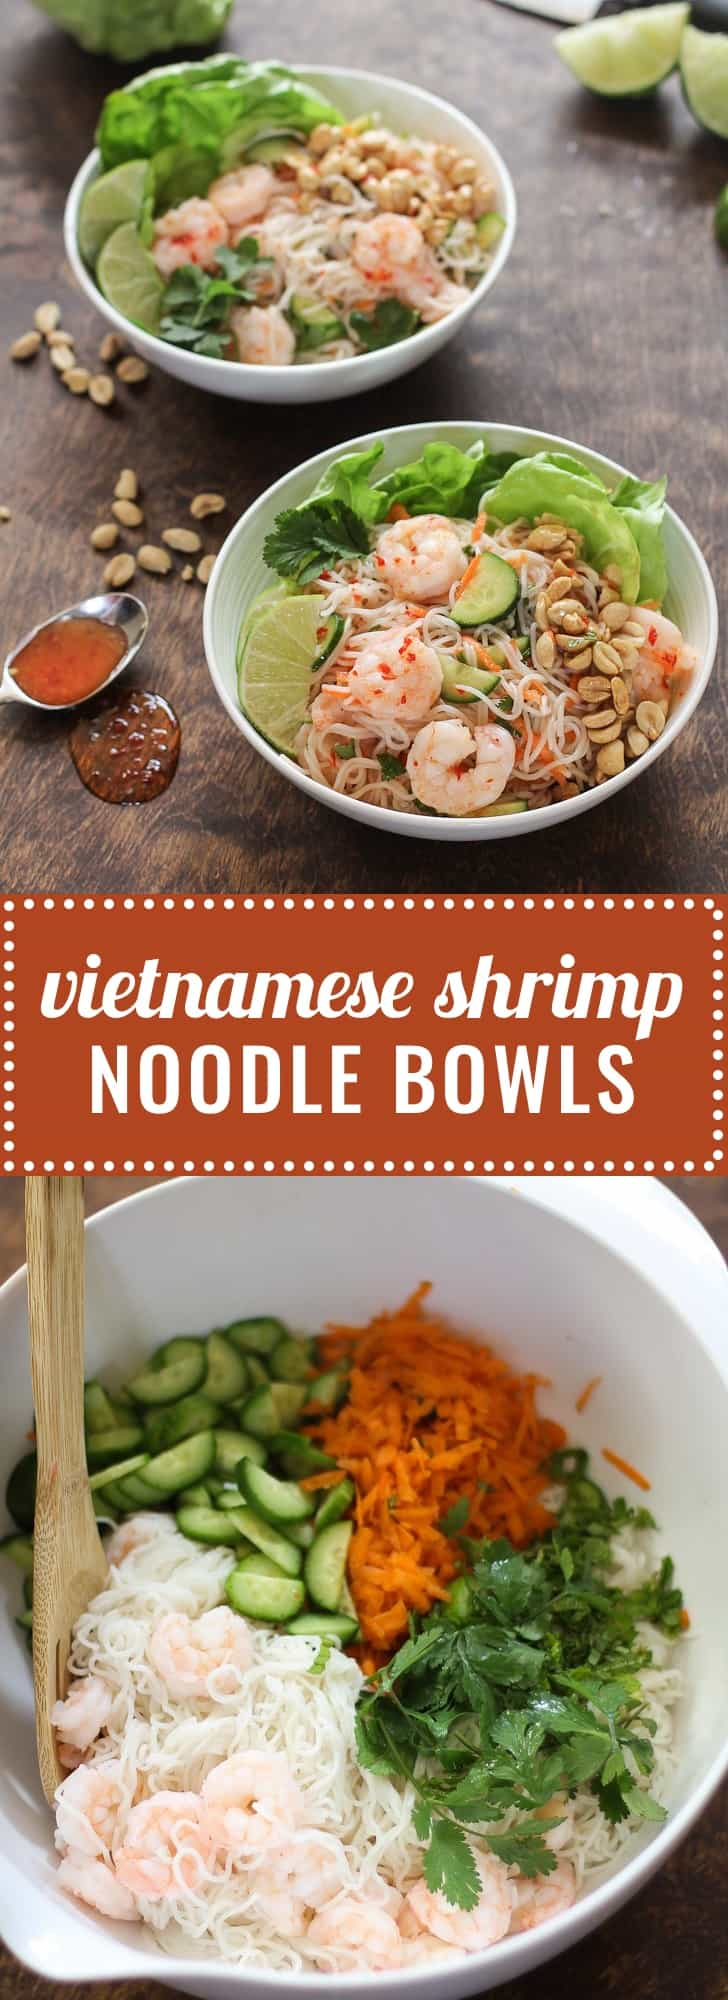 Vietnamese Shrimp Noodle Bowls - Fresh, sweet, and tart, Vietnamese Noodle Bowls are made for warm weather. They are great served chilled, so can be made ahead and refrigerated for up to a day. This is a unique salad to take to a potluck, and is always a hit!